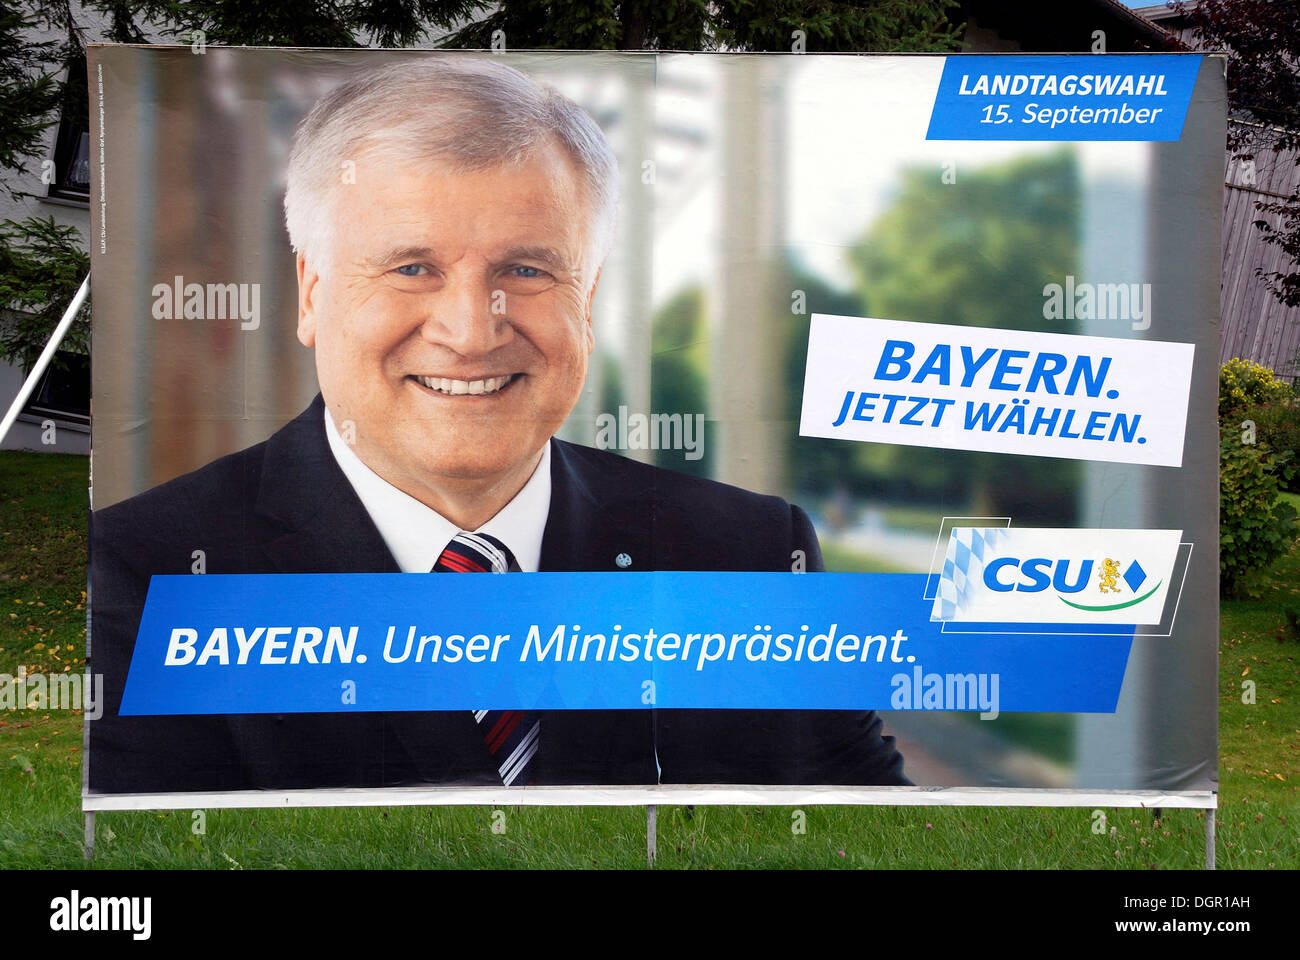 Poster advertising the CSU for the Bavarian Prime Minister Horst Seehofer for state elections in Bavaria on 15.09.2013. - Stock Image